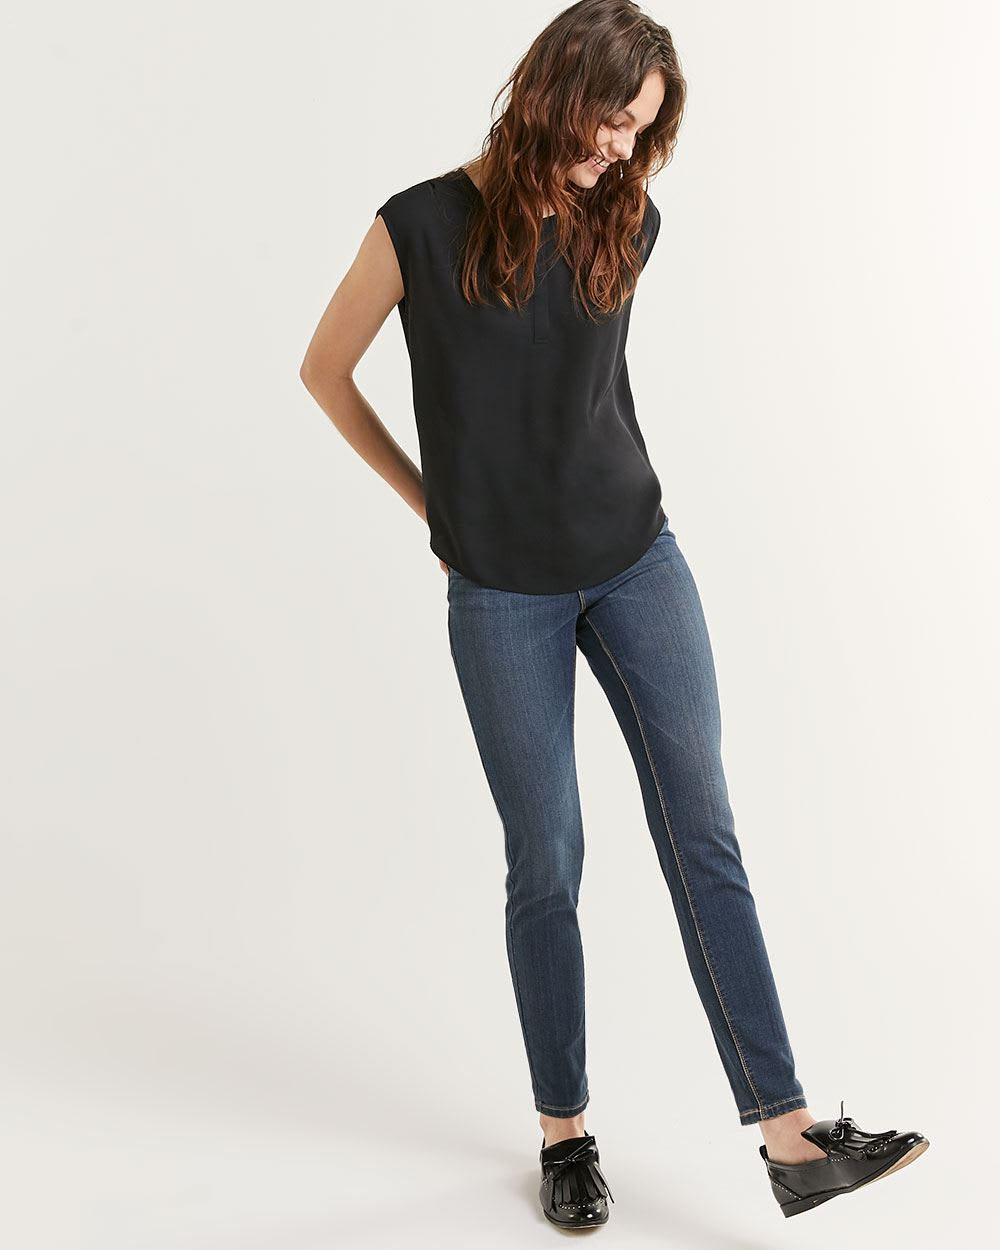 The Signature Soft High Waist Skinny Jeans